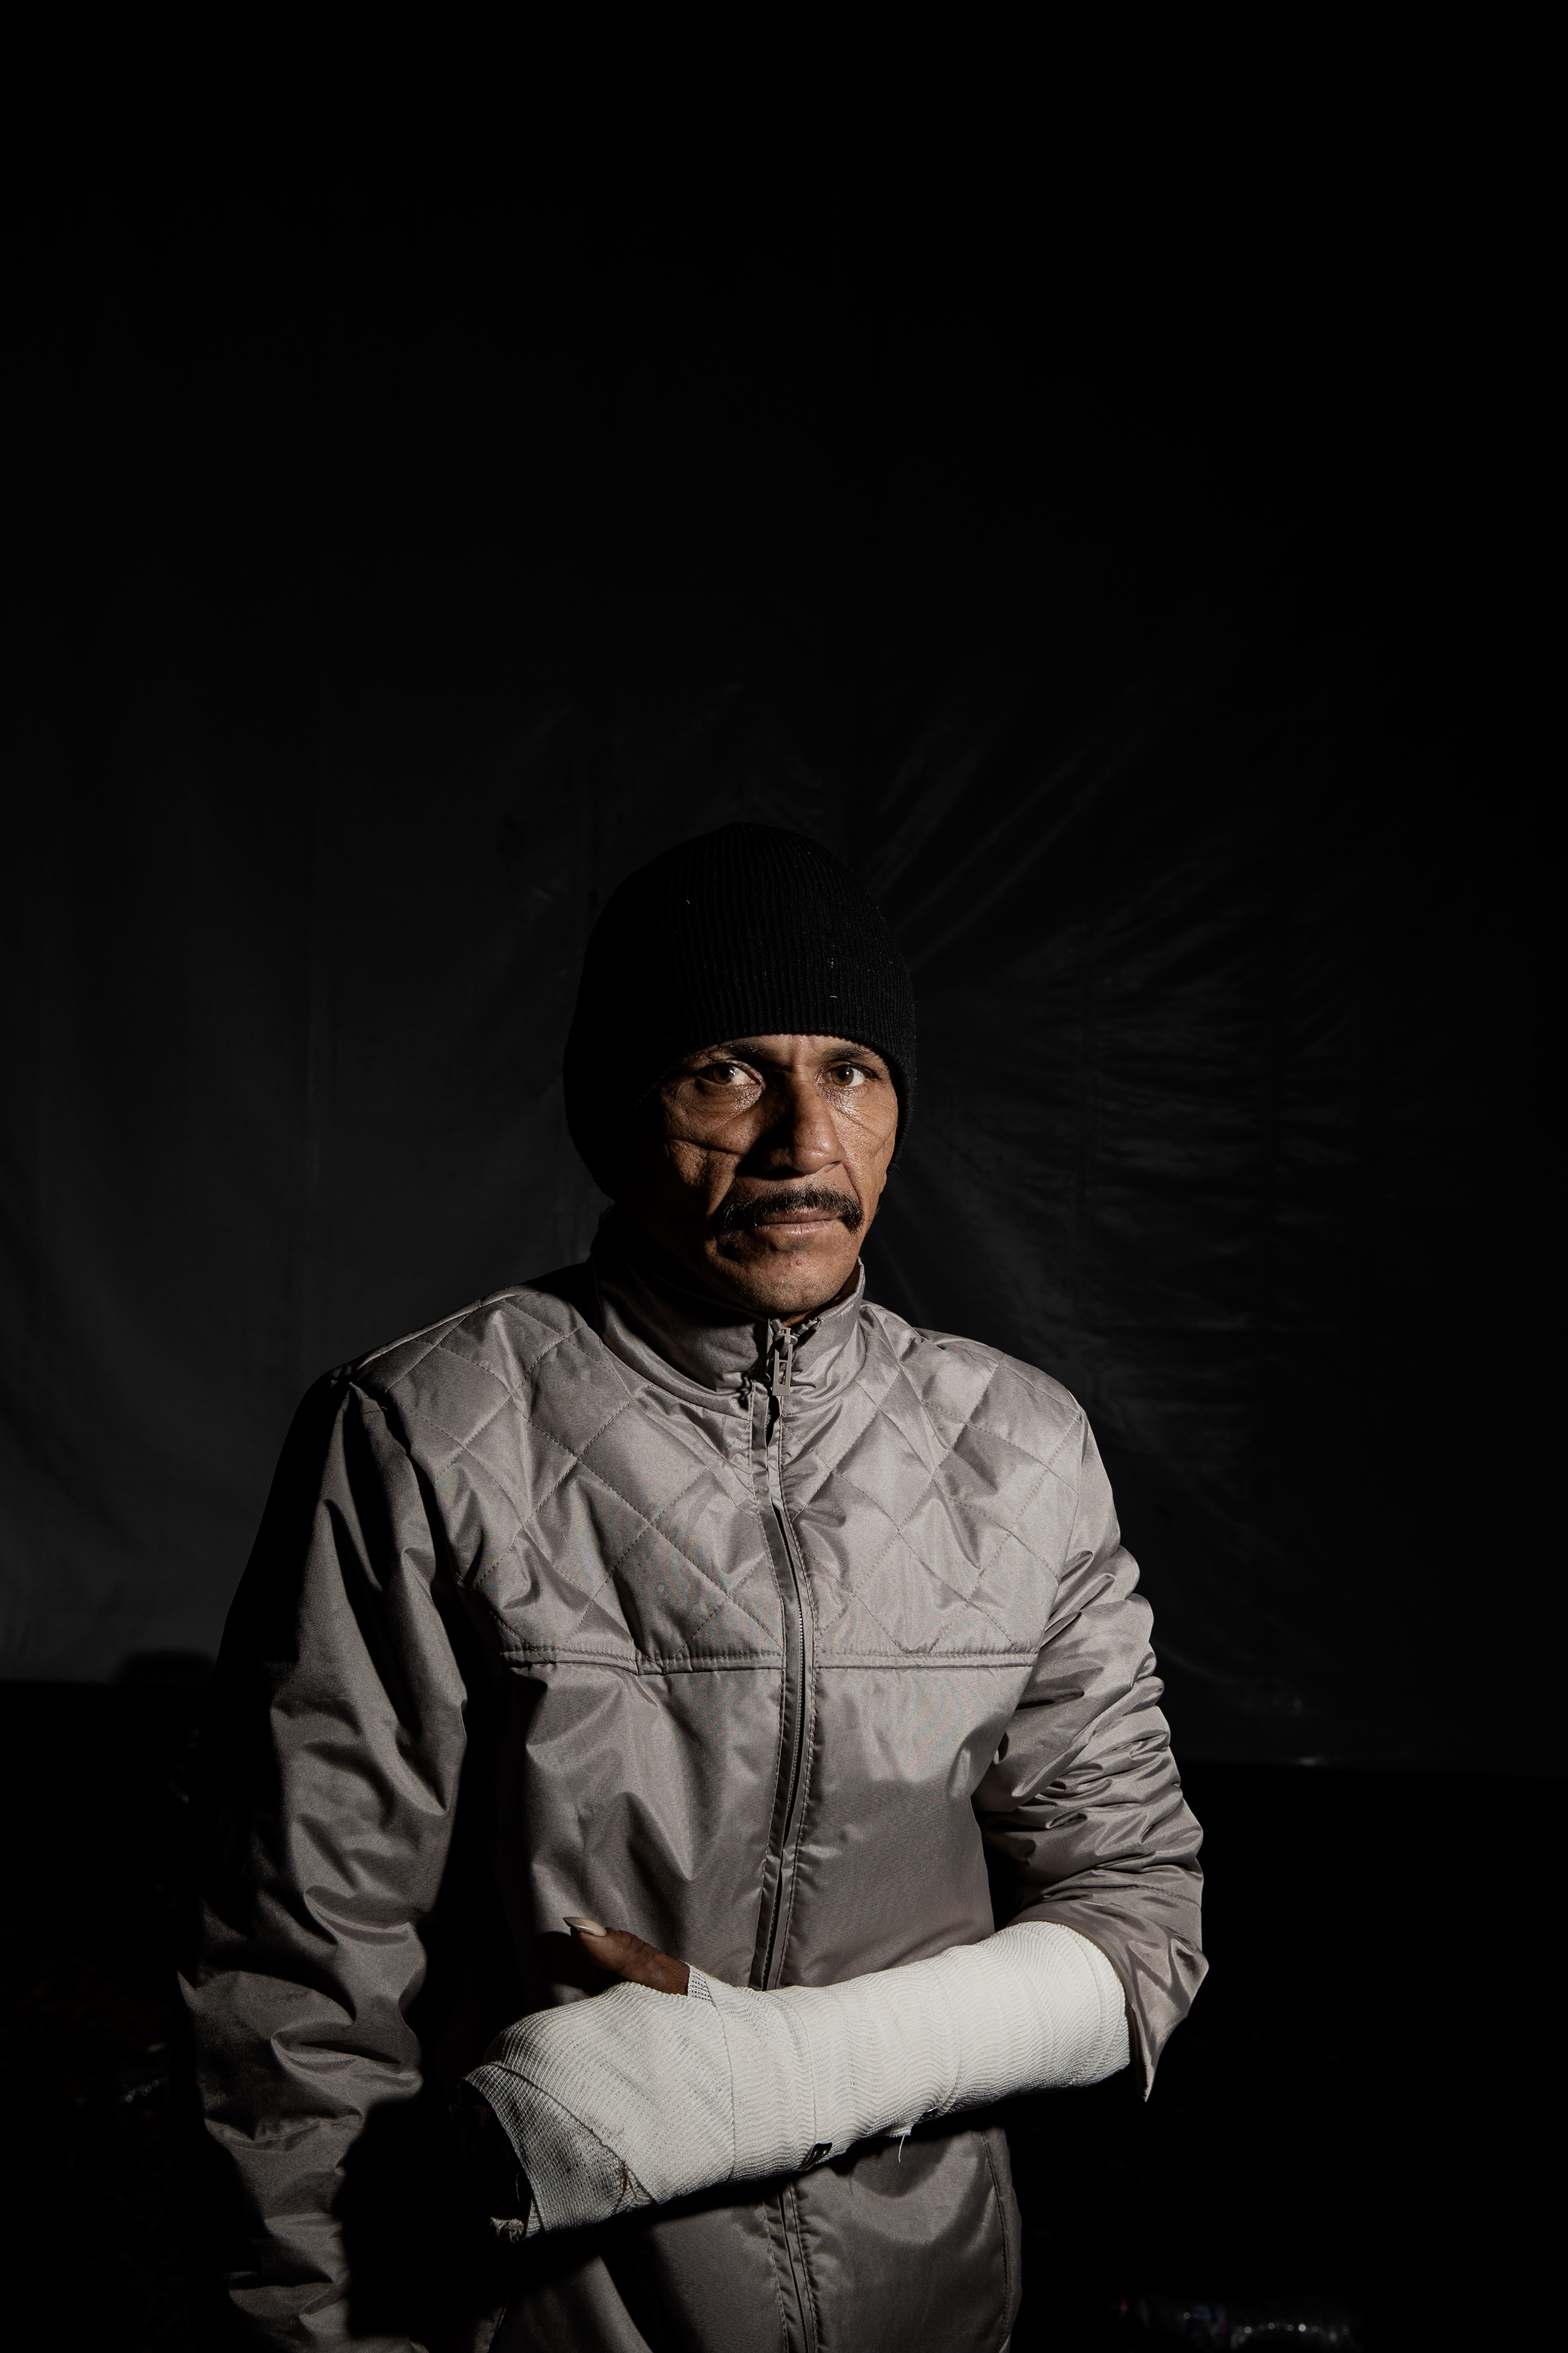 Roberto Vaughan Ordáz, 42, at the Jesus Martinez stadium on Nov. 9, 2018. Ordáz says he first tried to migrate to the US in 2015. When he arrived in Chiapas, he was kidnapped by a gang, shot eight times, cut up with a machete and left for dead. The violence remains in the scars on his face. He decided to travel with the migrant caravan for safety.